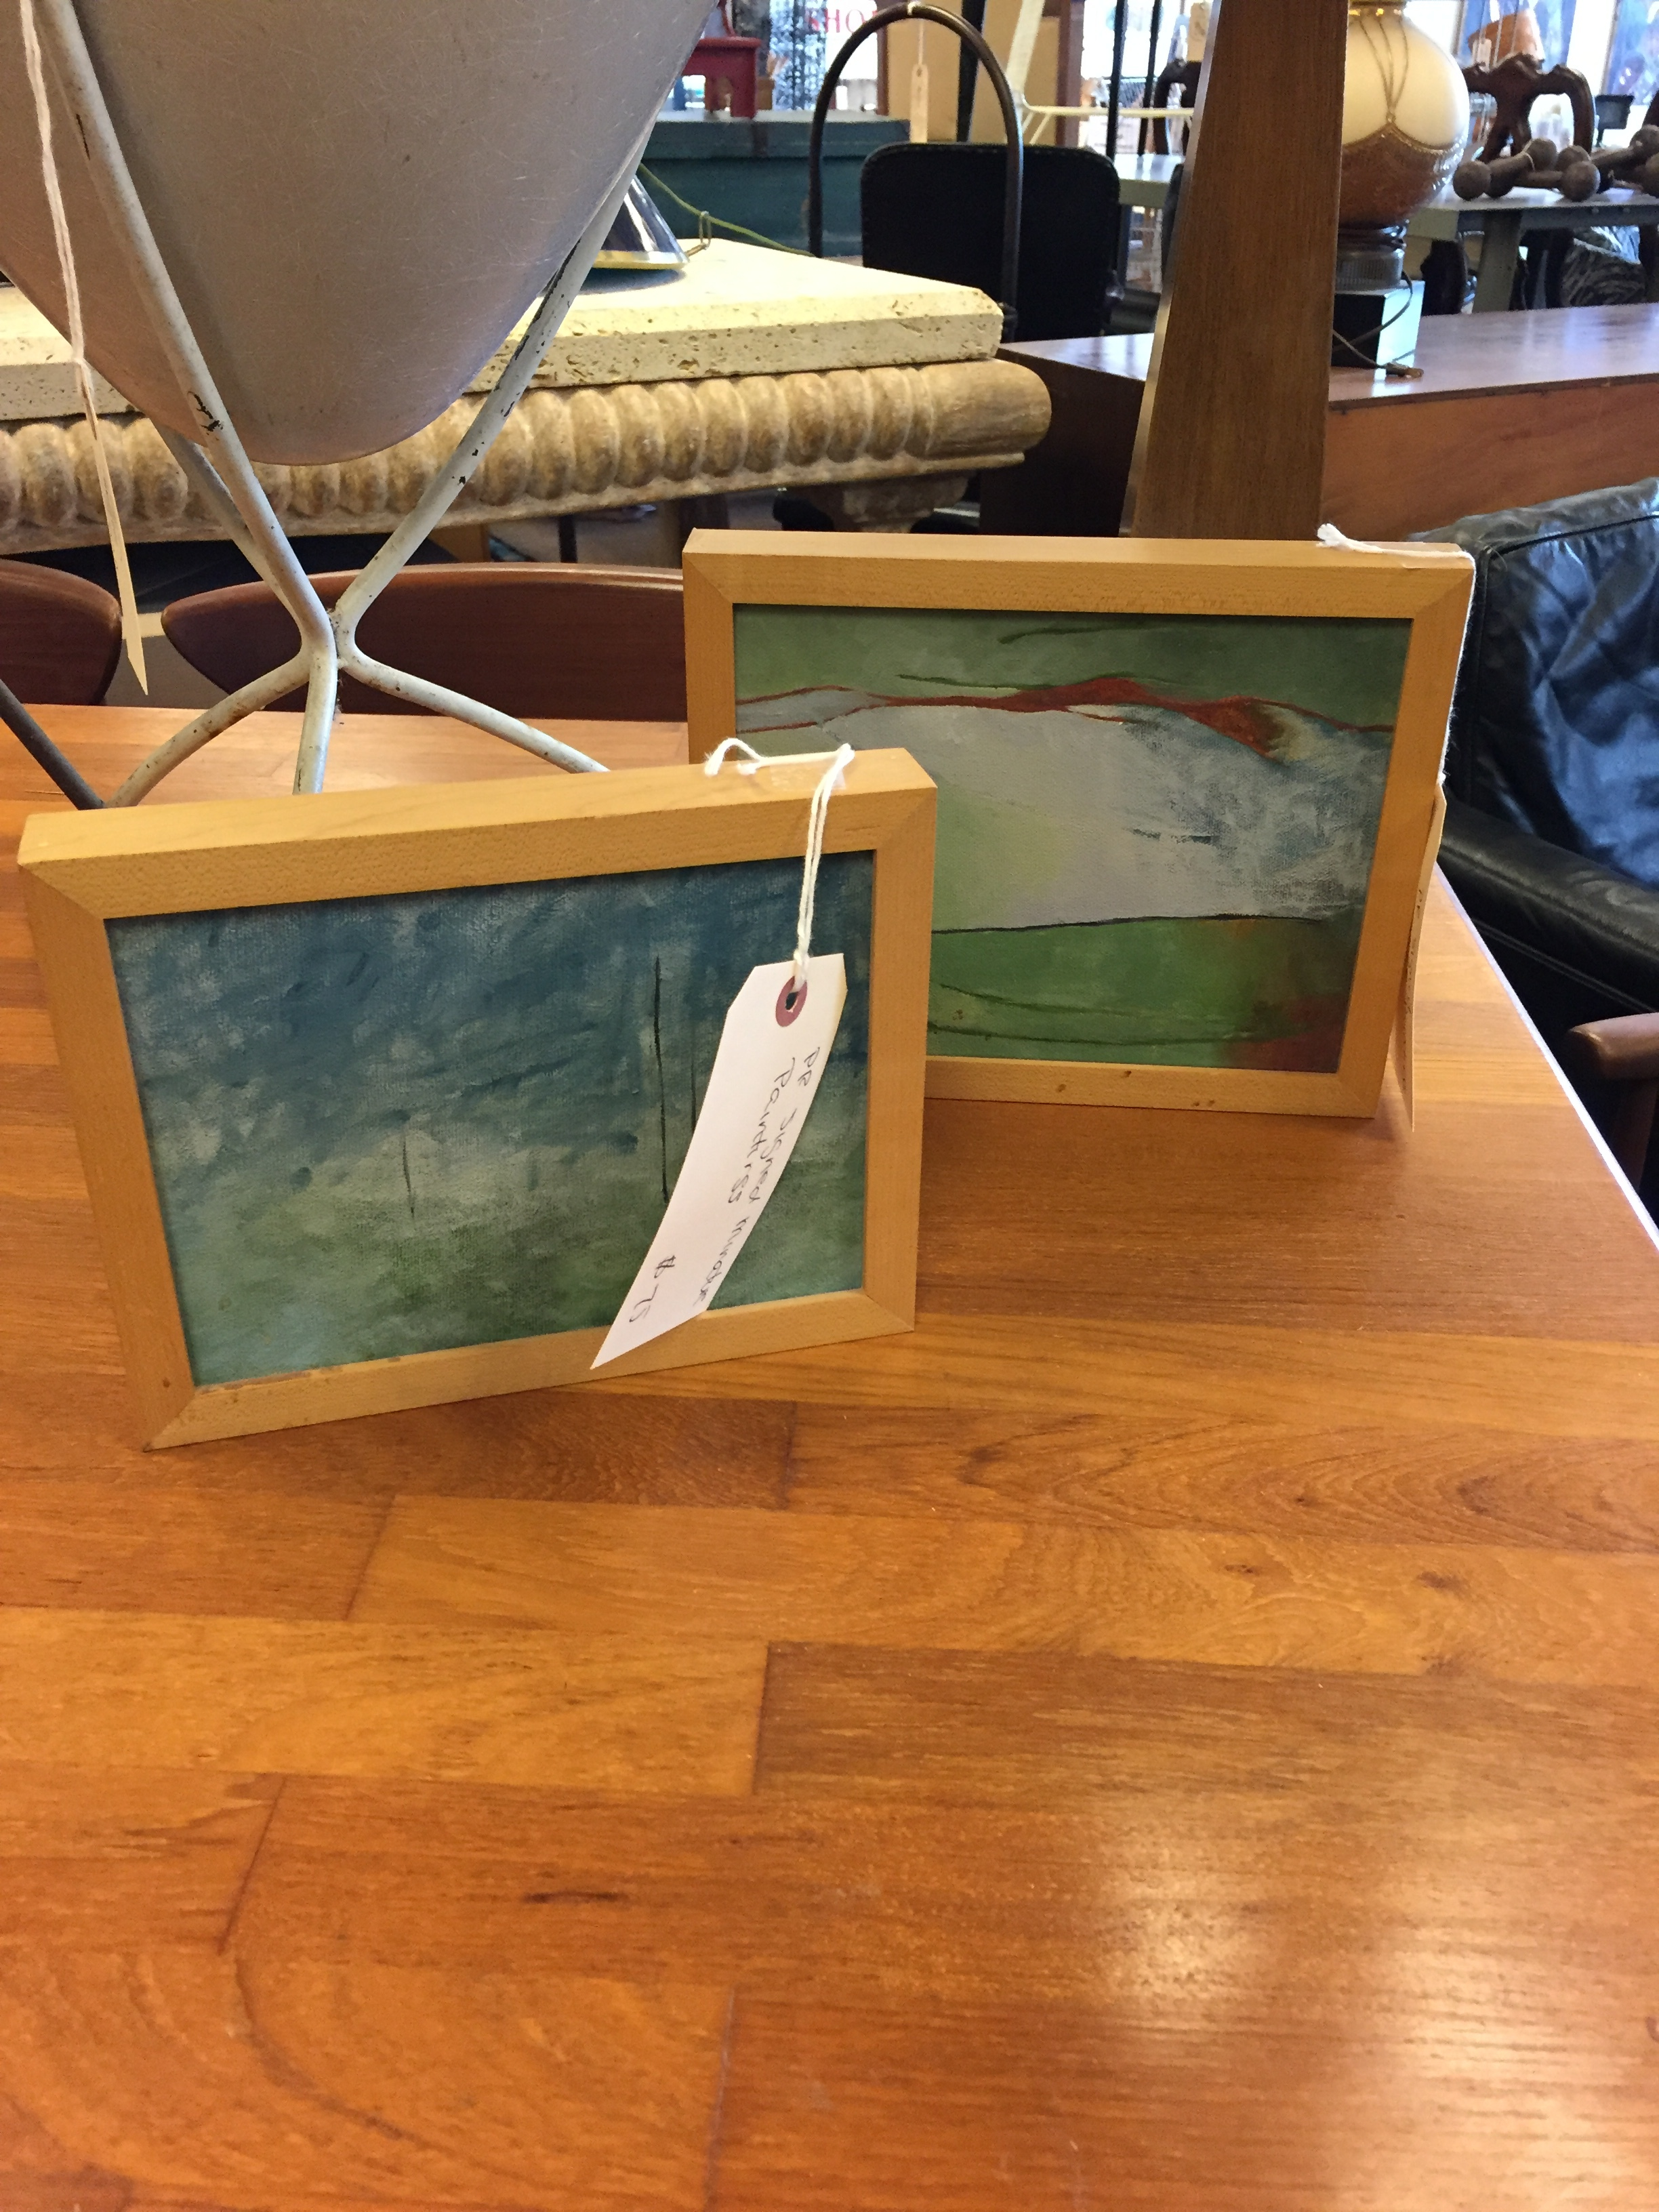 These mini paintings came from an estate sale. I bought them and plan on using them in the #oneroomchallenge I'm doing in my powder room.